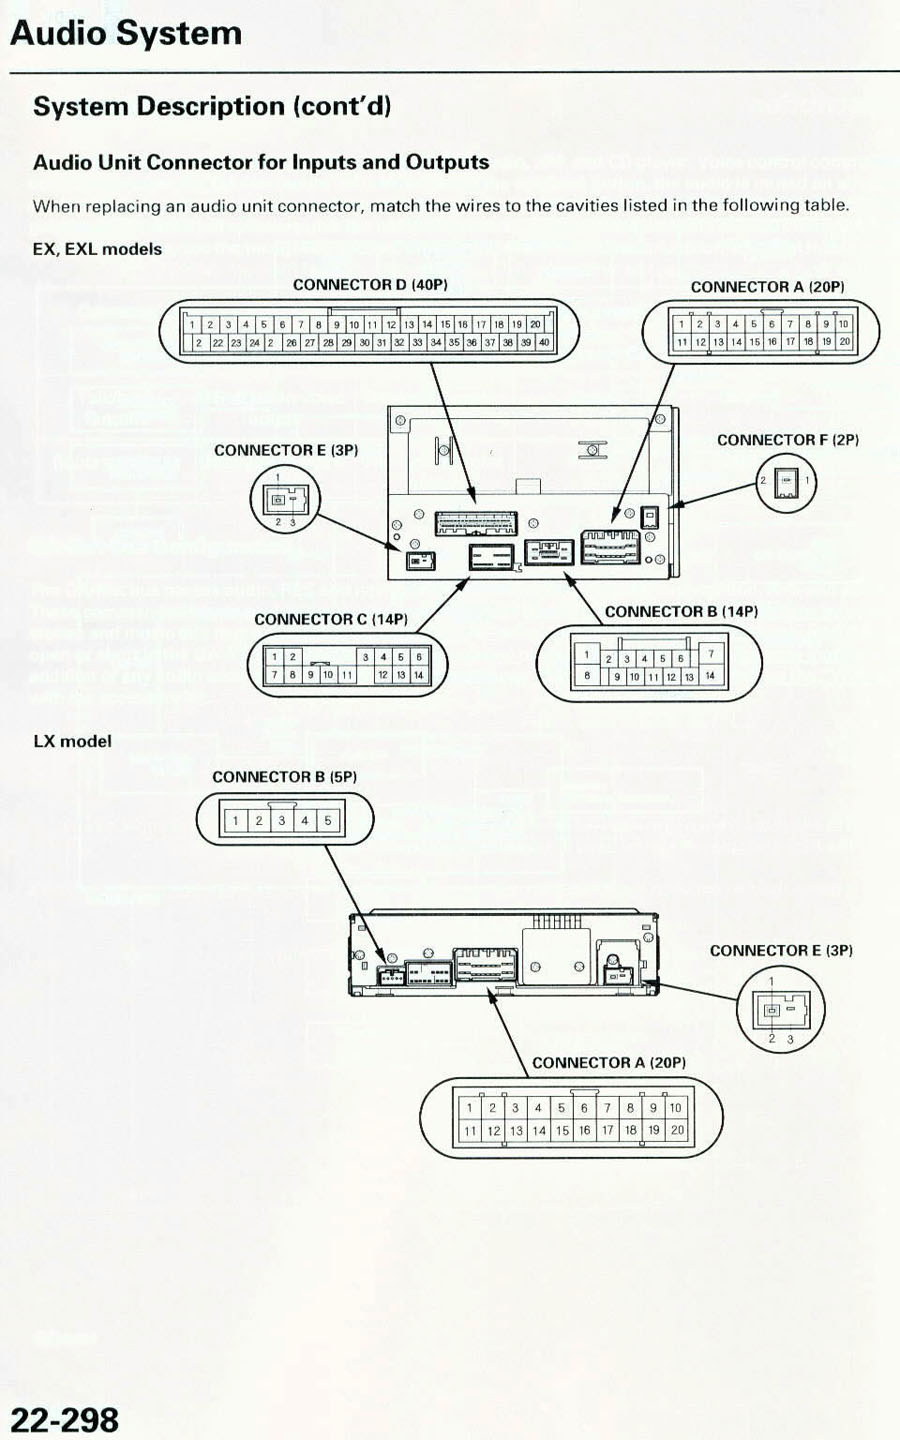 Honda Crv Radio Wiring Diagram Will Be A Thing 2000 Insight File Type Audio Connector 2006 182 0 Kb 22742 2003